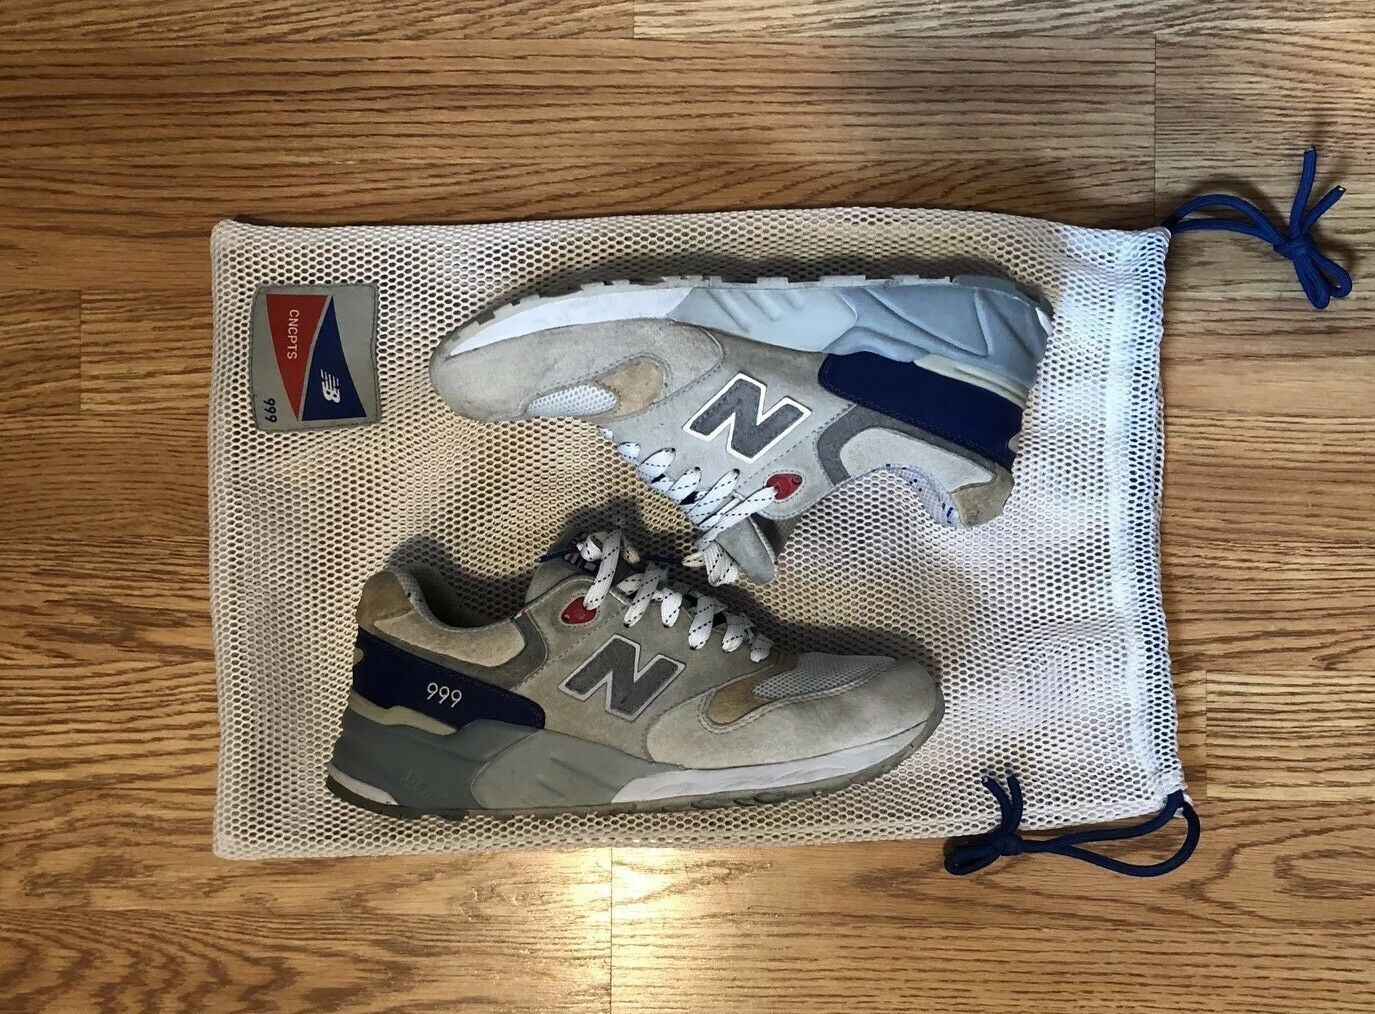 NEW BALANCE X CONCEPTS 2009 KENNEDY SAMPLE SIZE 9 PRE OWNED CNCPTS HYANNIS